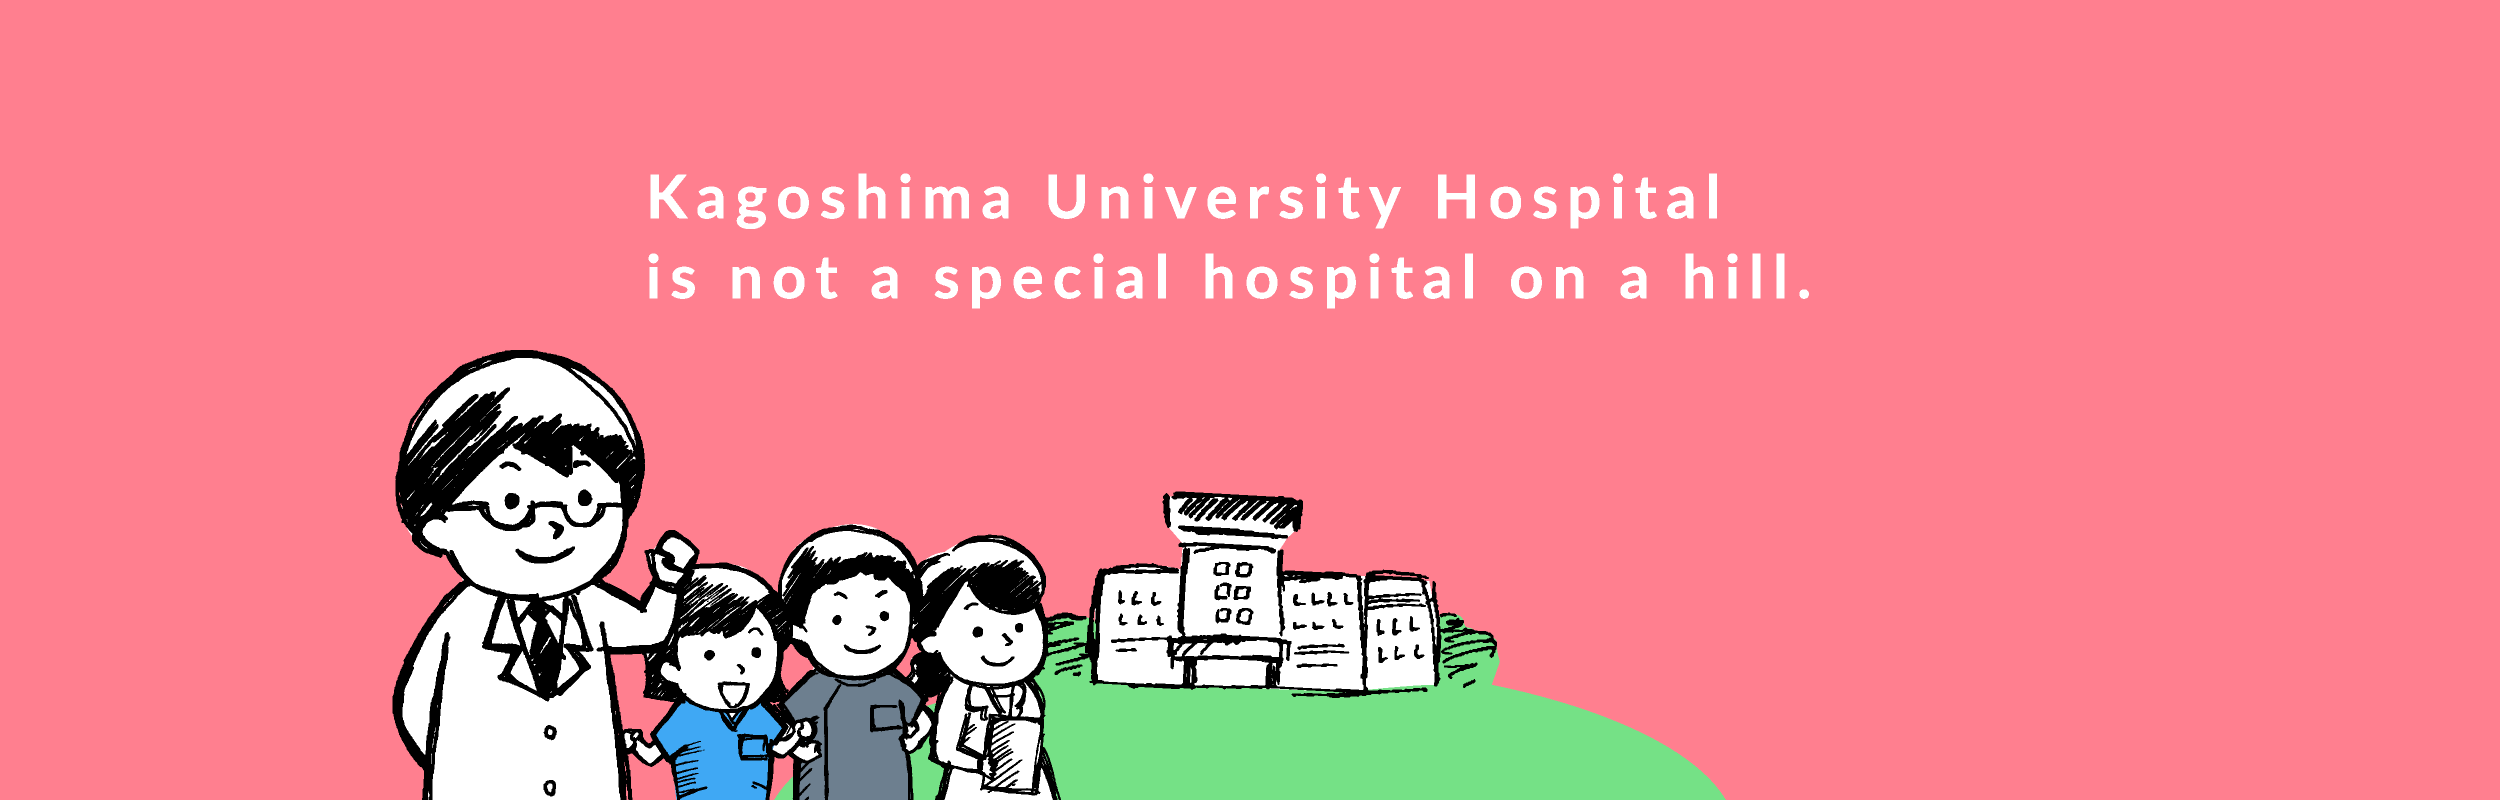 Kagoshima University Hospital is not a special hospital on a hill.